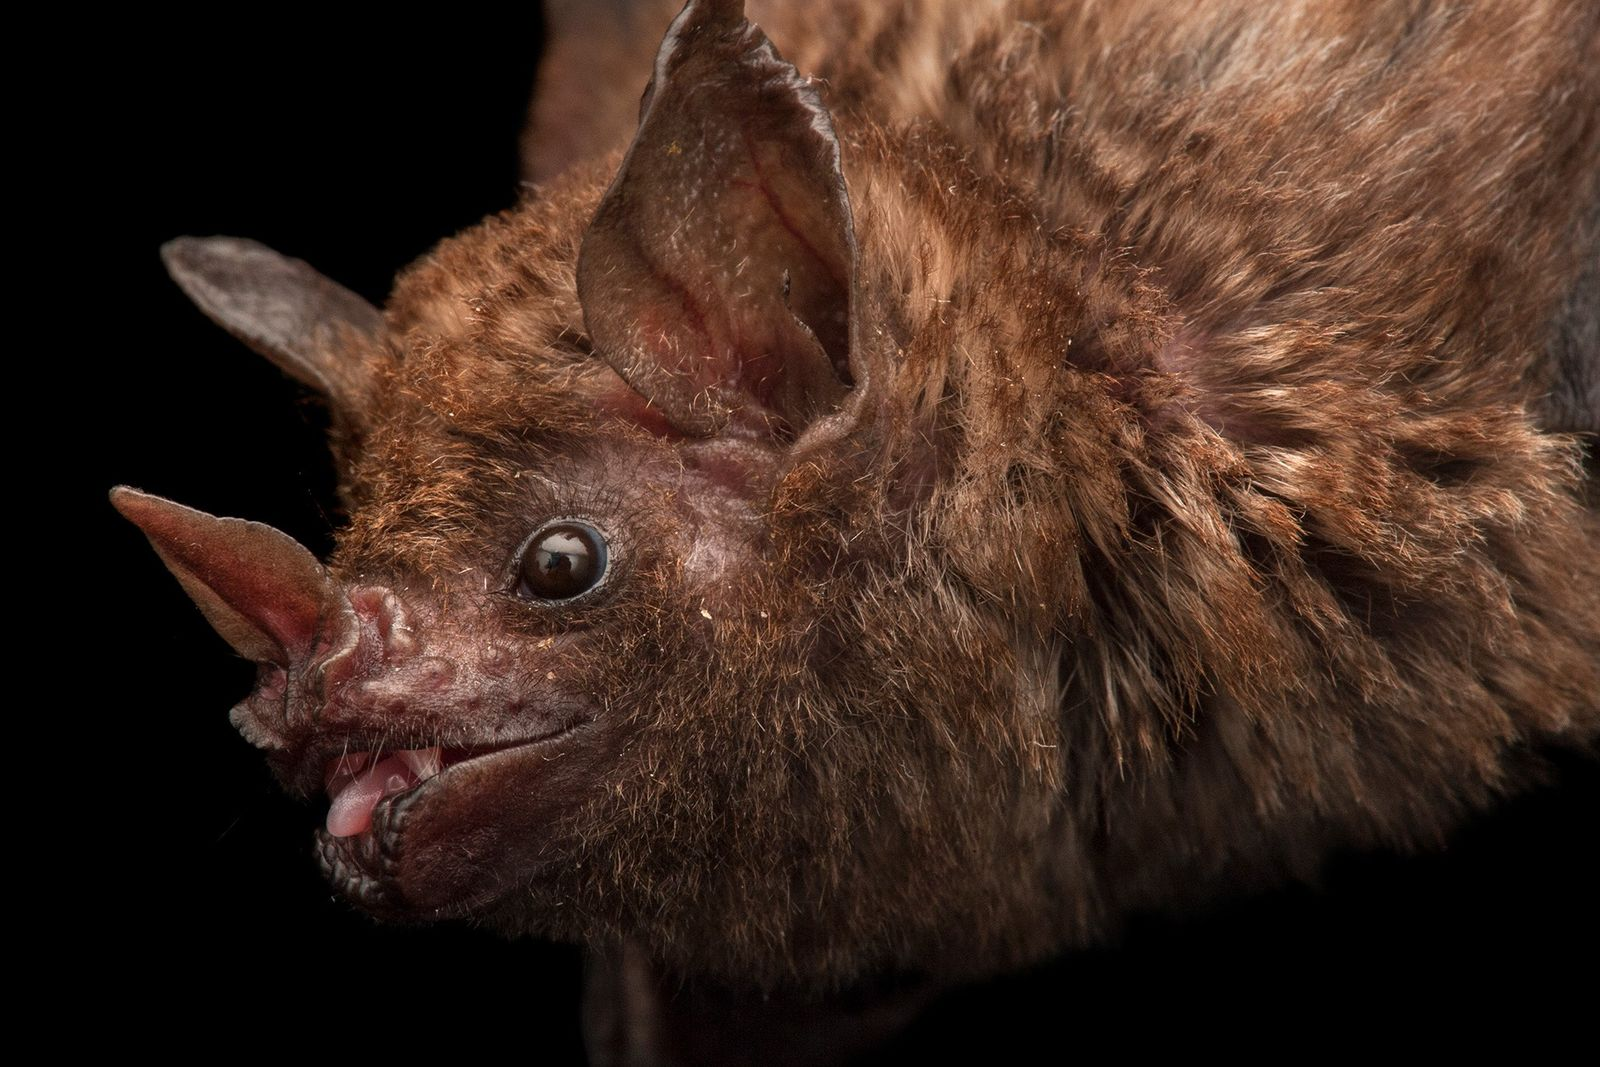 Bats, such as this Seba's short-tailed fruit bat, face various threats in Bolivia, including demand for ...